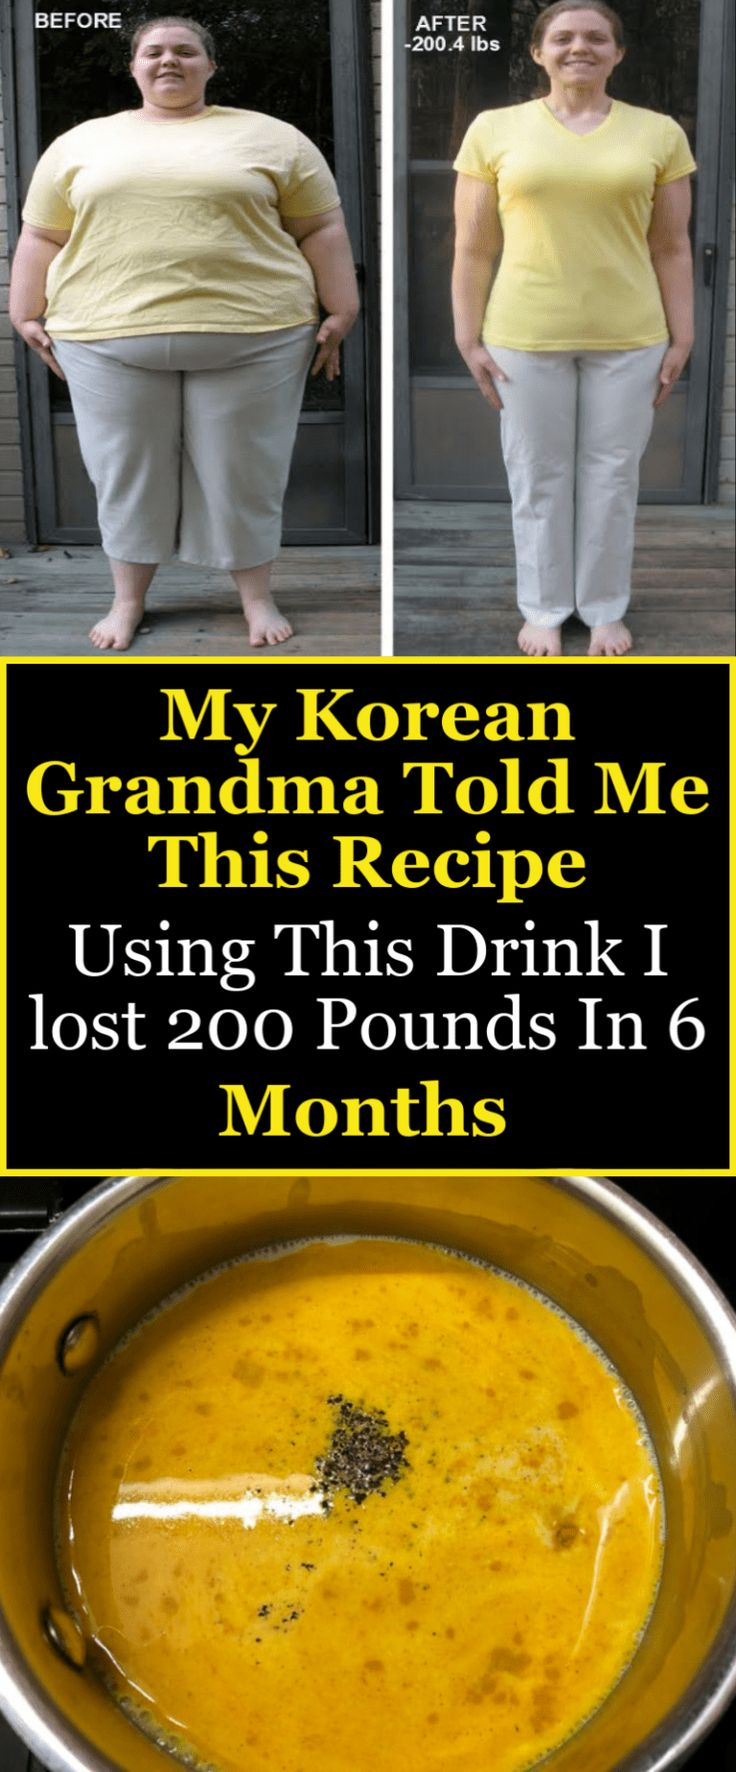 My Korean Grandma Told Me This Recipe Using This Drink I lost 200 Pounds In 6 Mo…